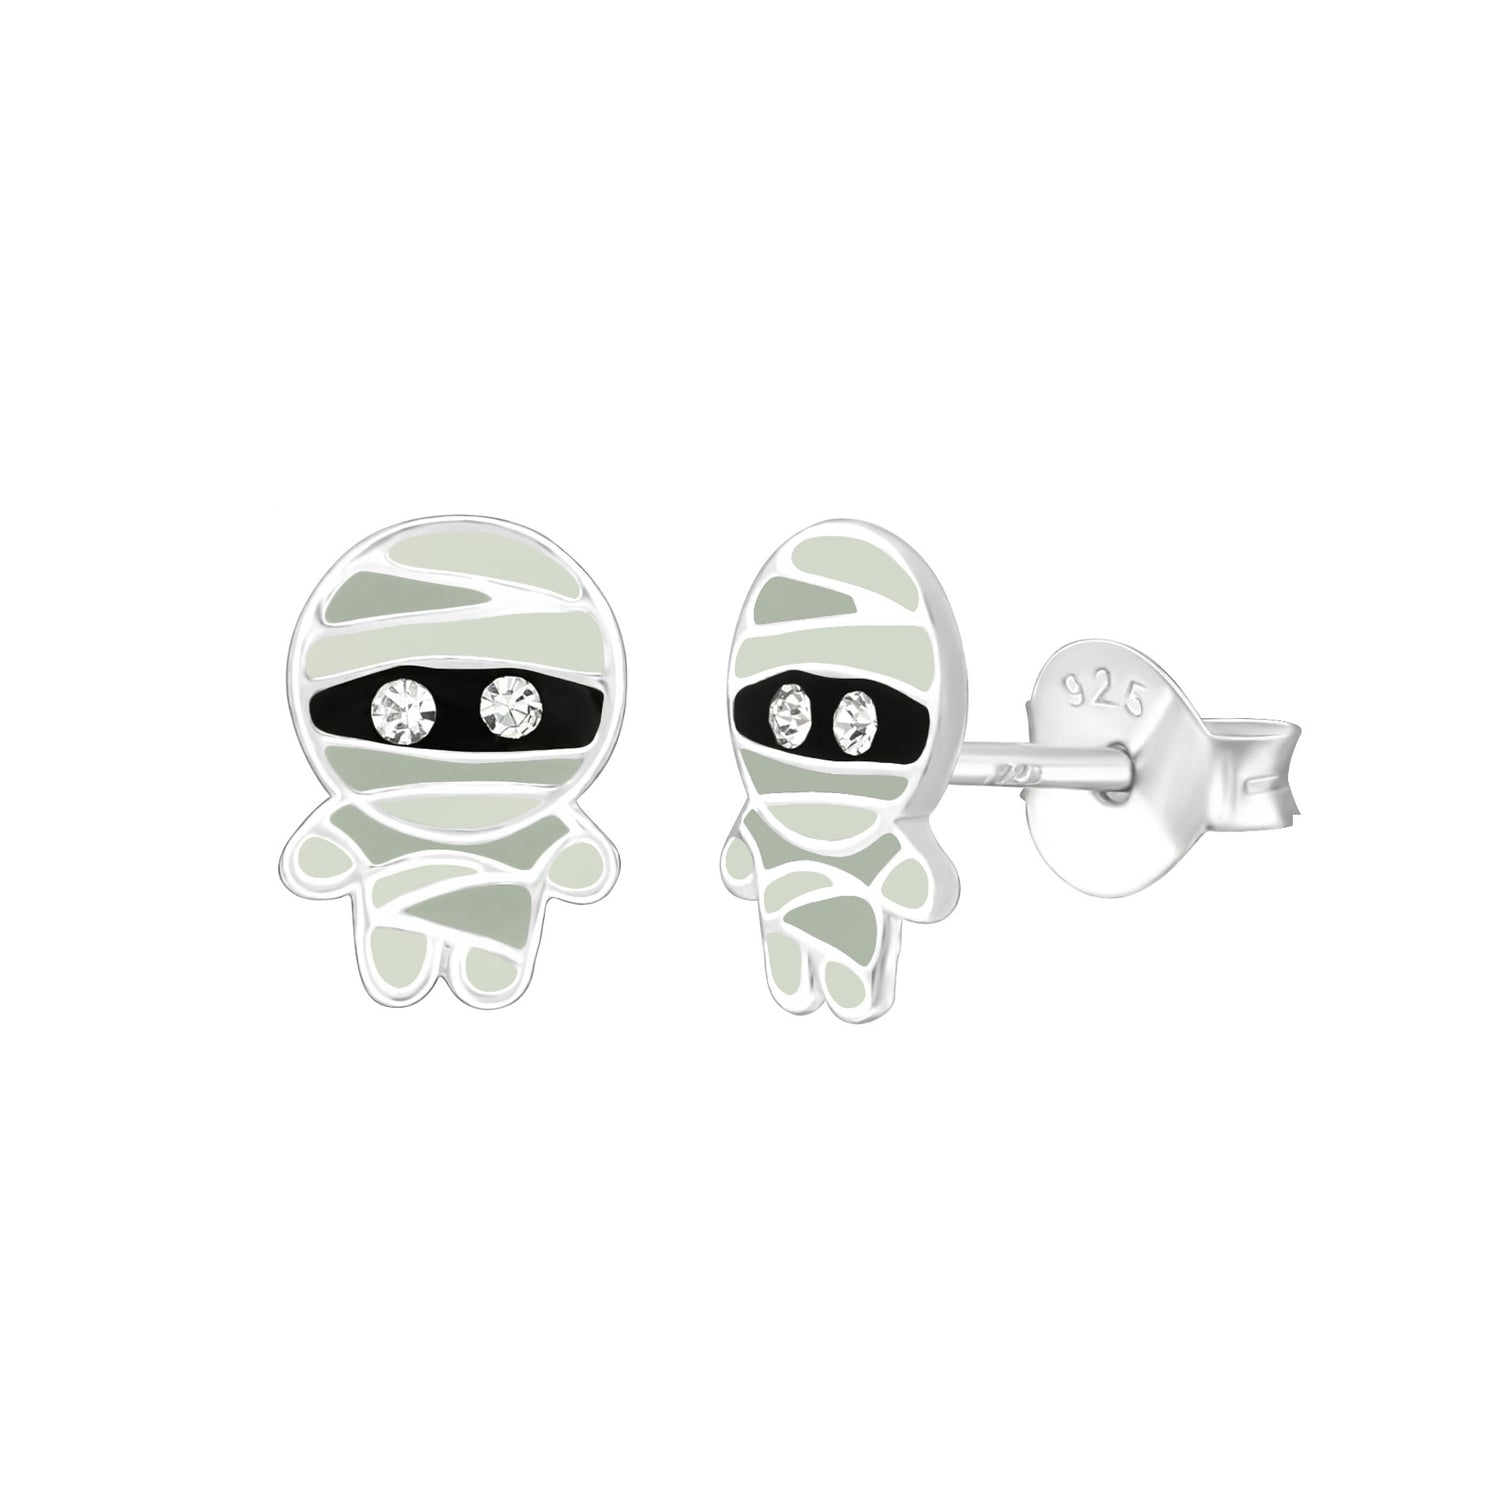 Egyptian Mummy Stud Earrings